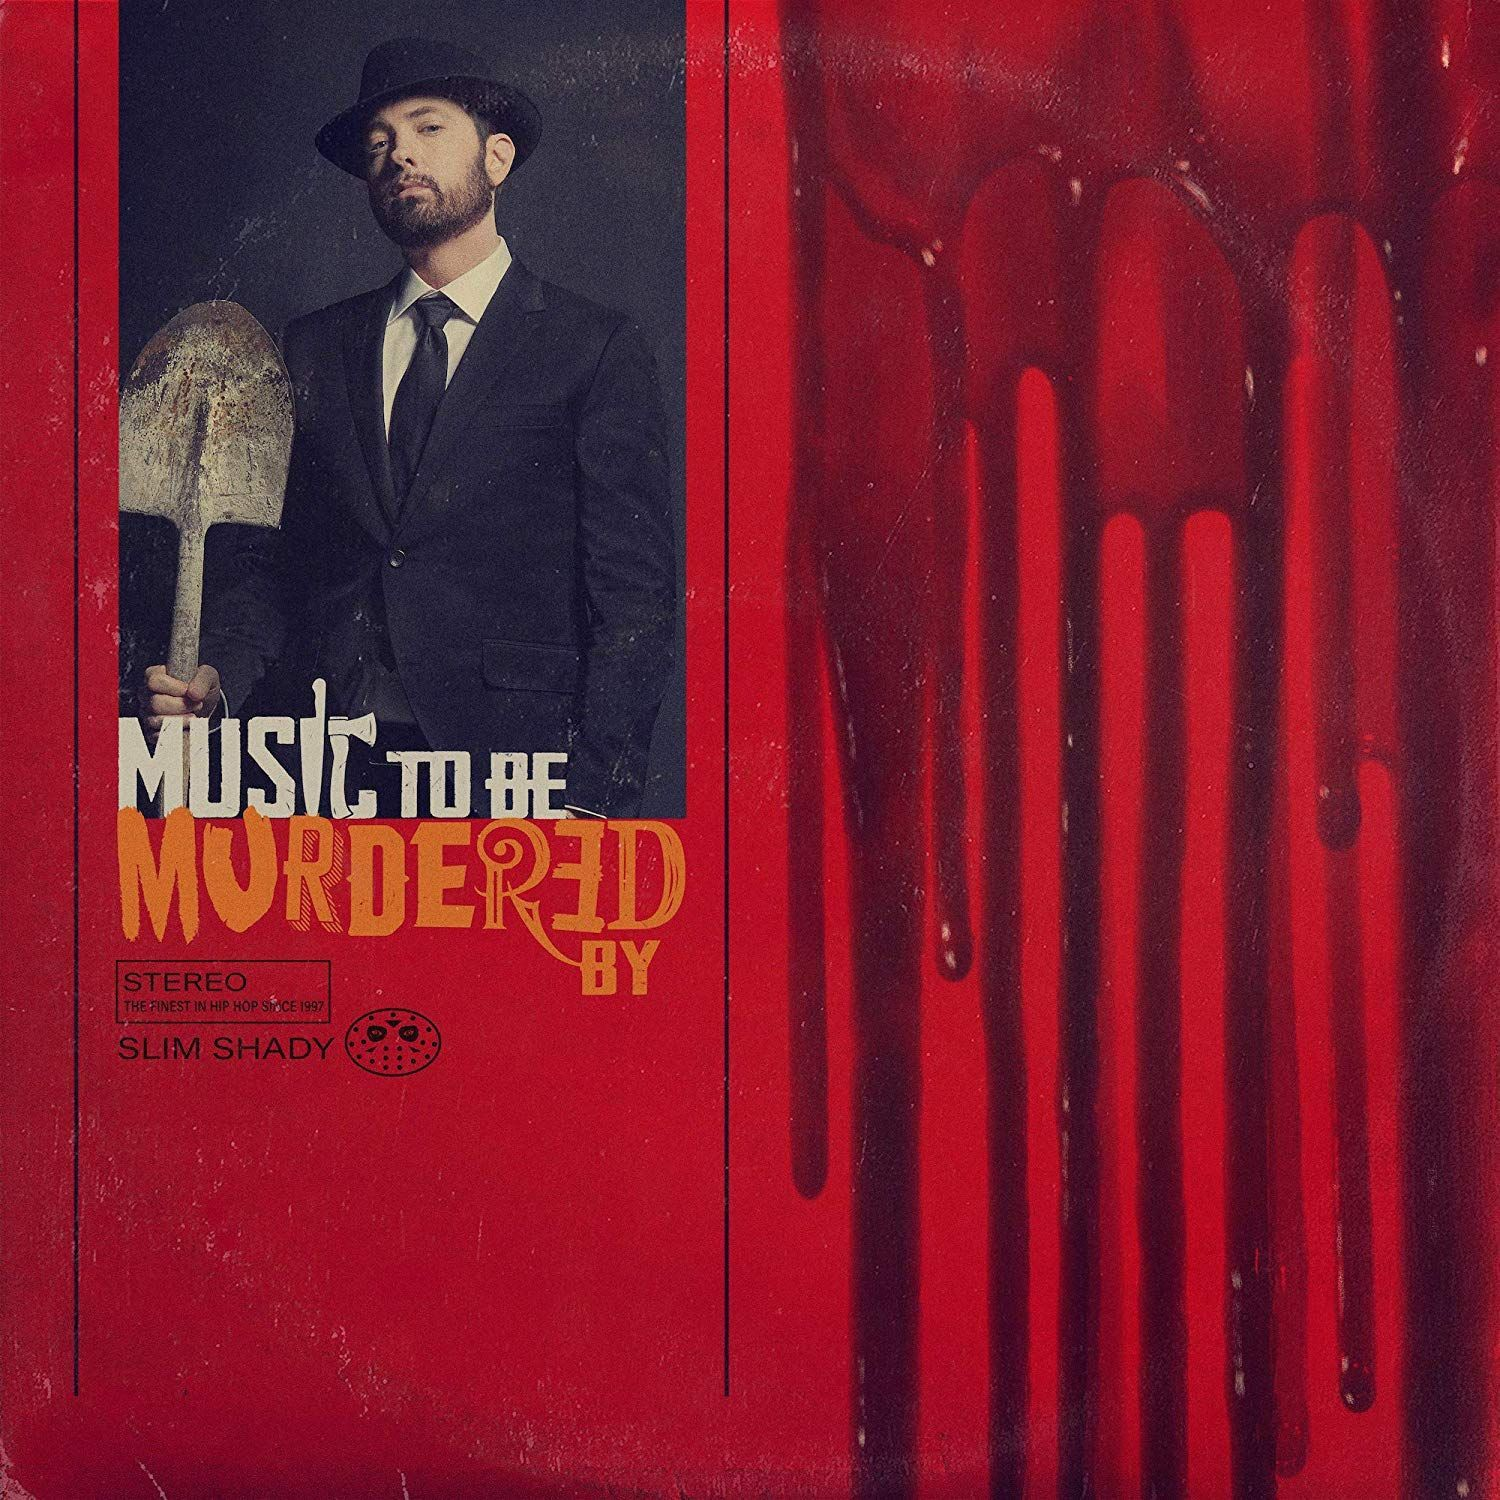 Eminem - Music To Be Murdered By (LV CD) - 1